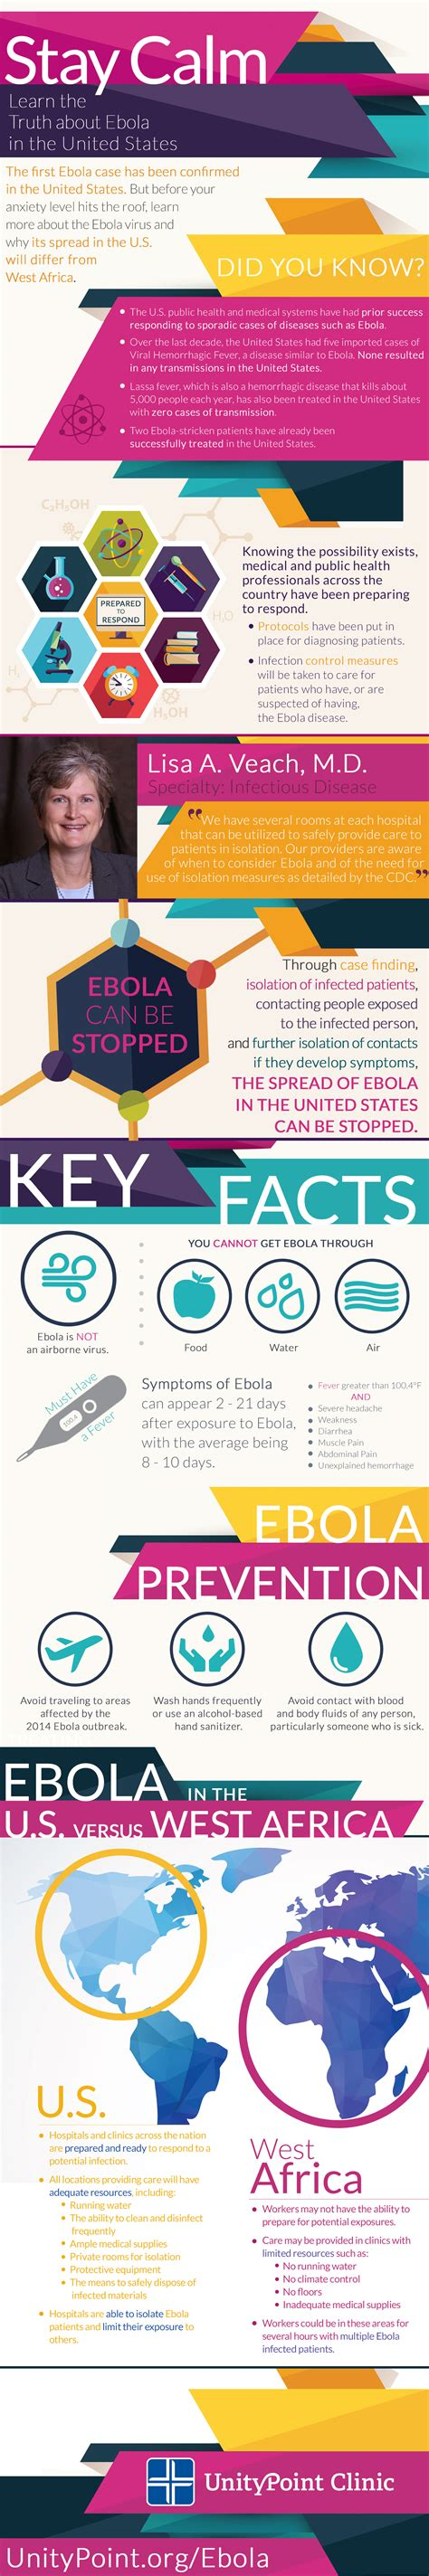 learn the about ebola in the united states from health experts